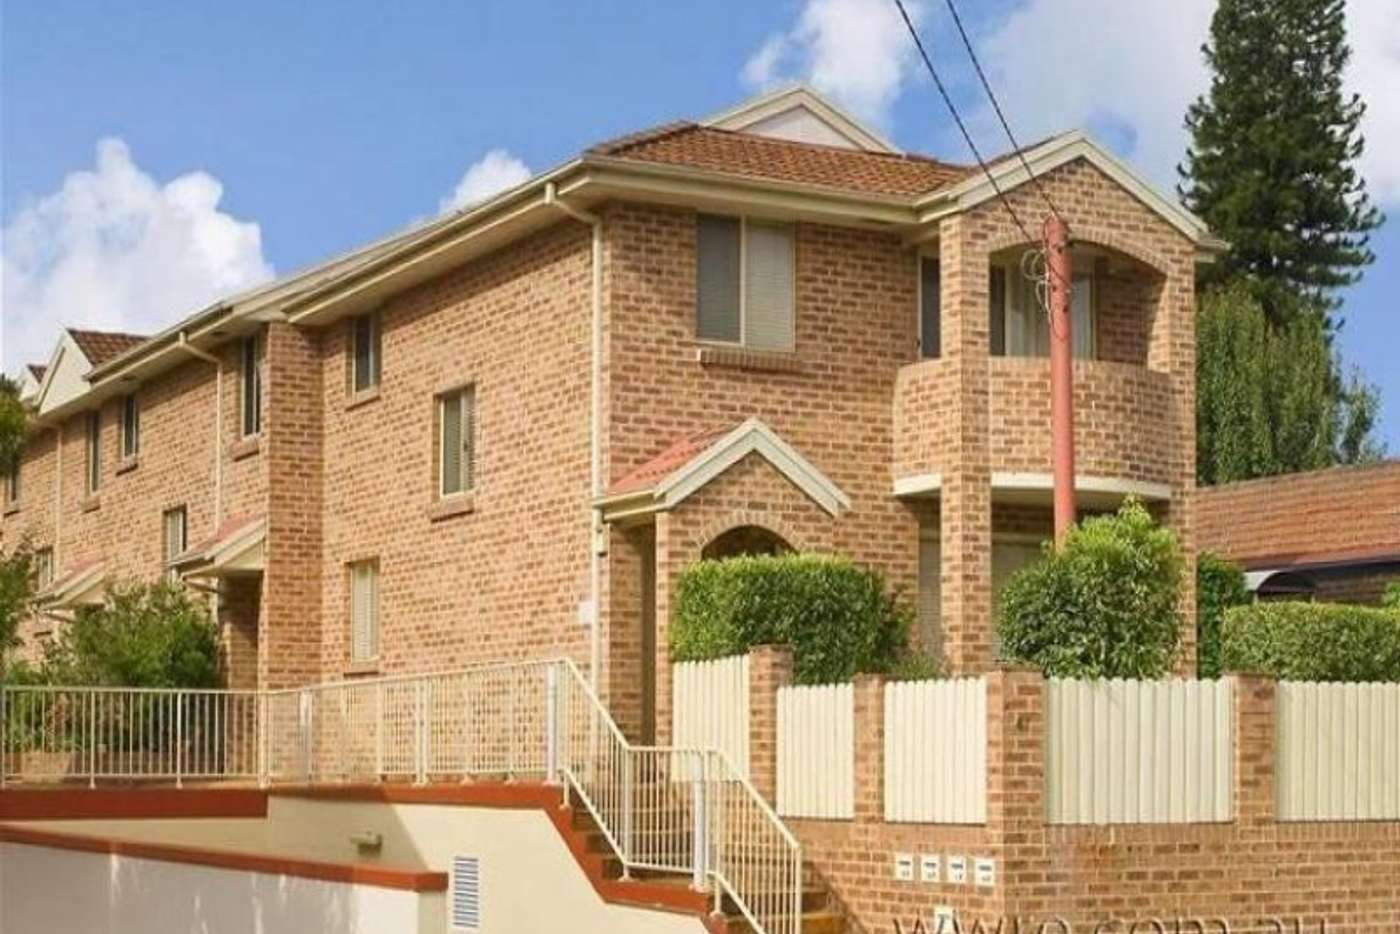 Main view of Homely townhouse listing, 1/41 Coranto Street, Wareemba NSW 2046